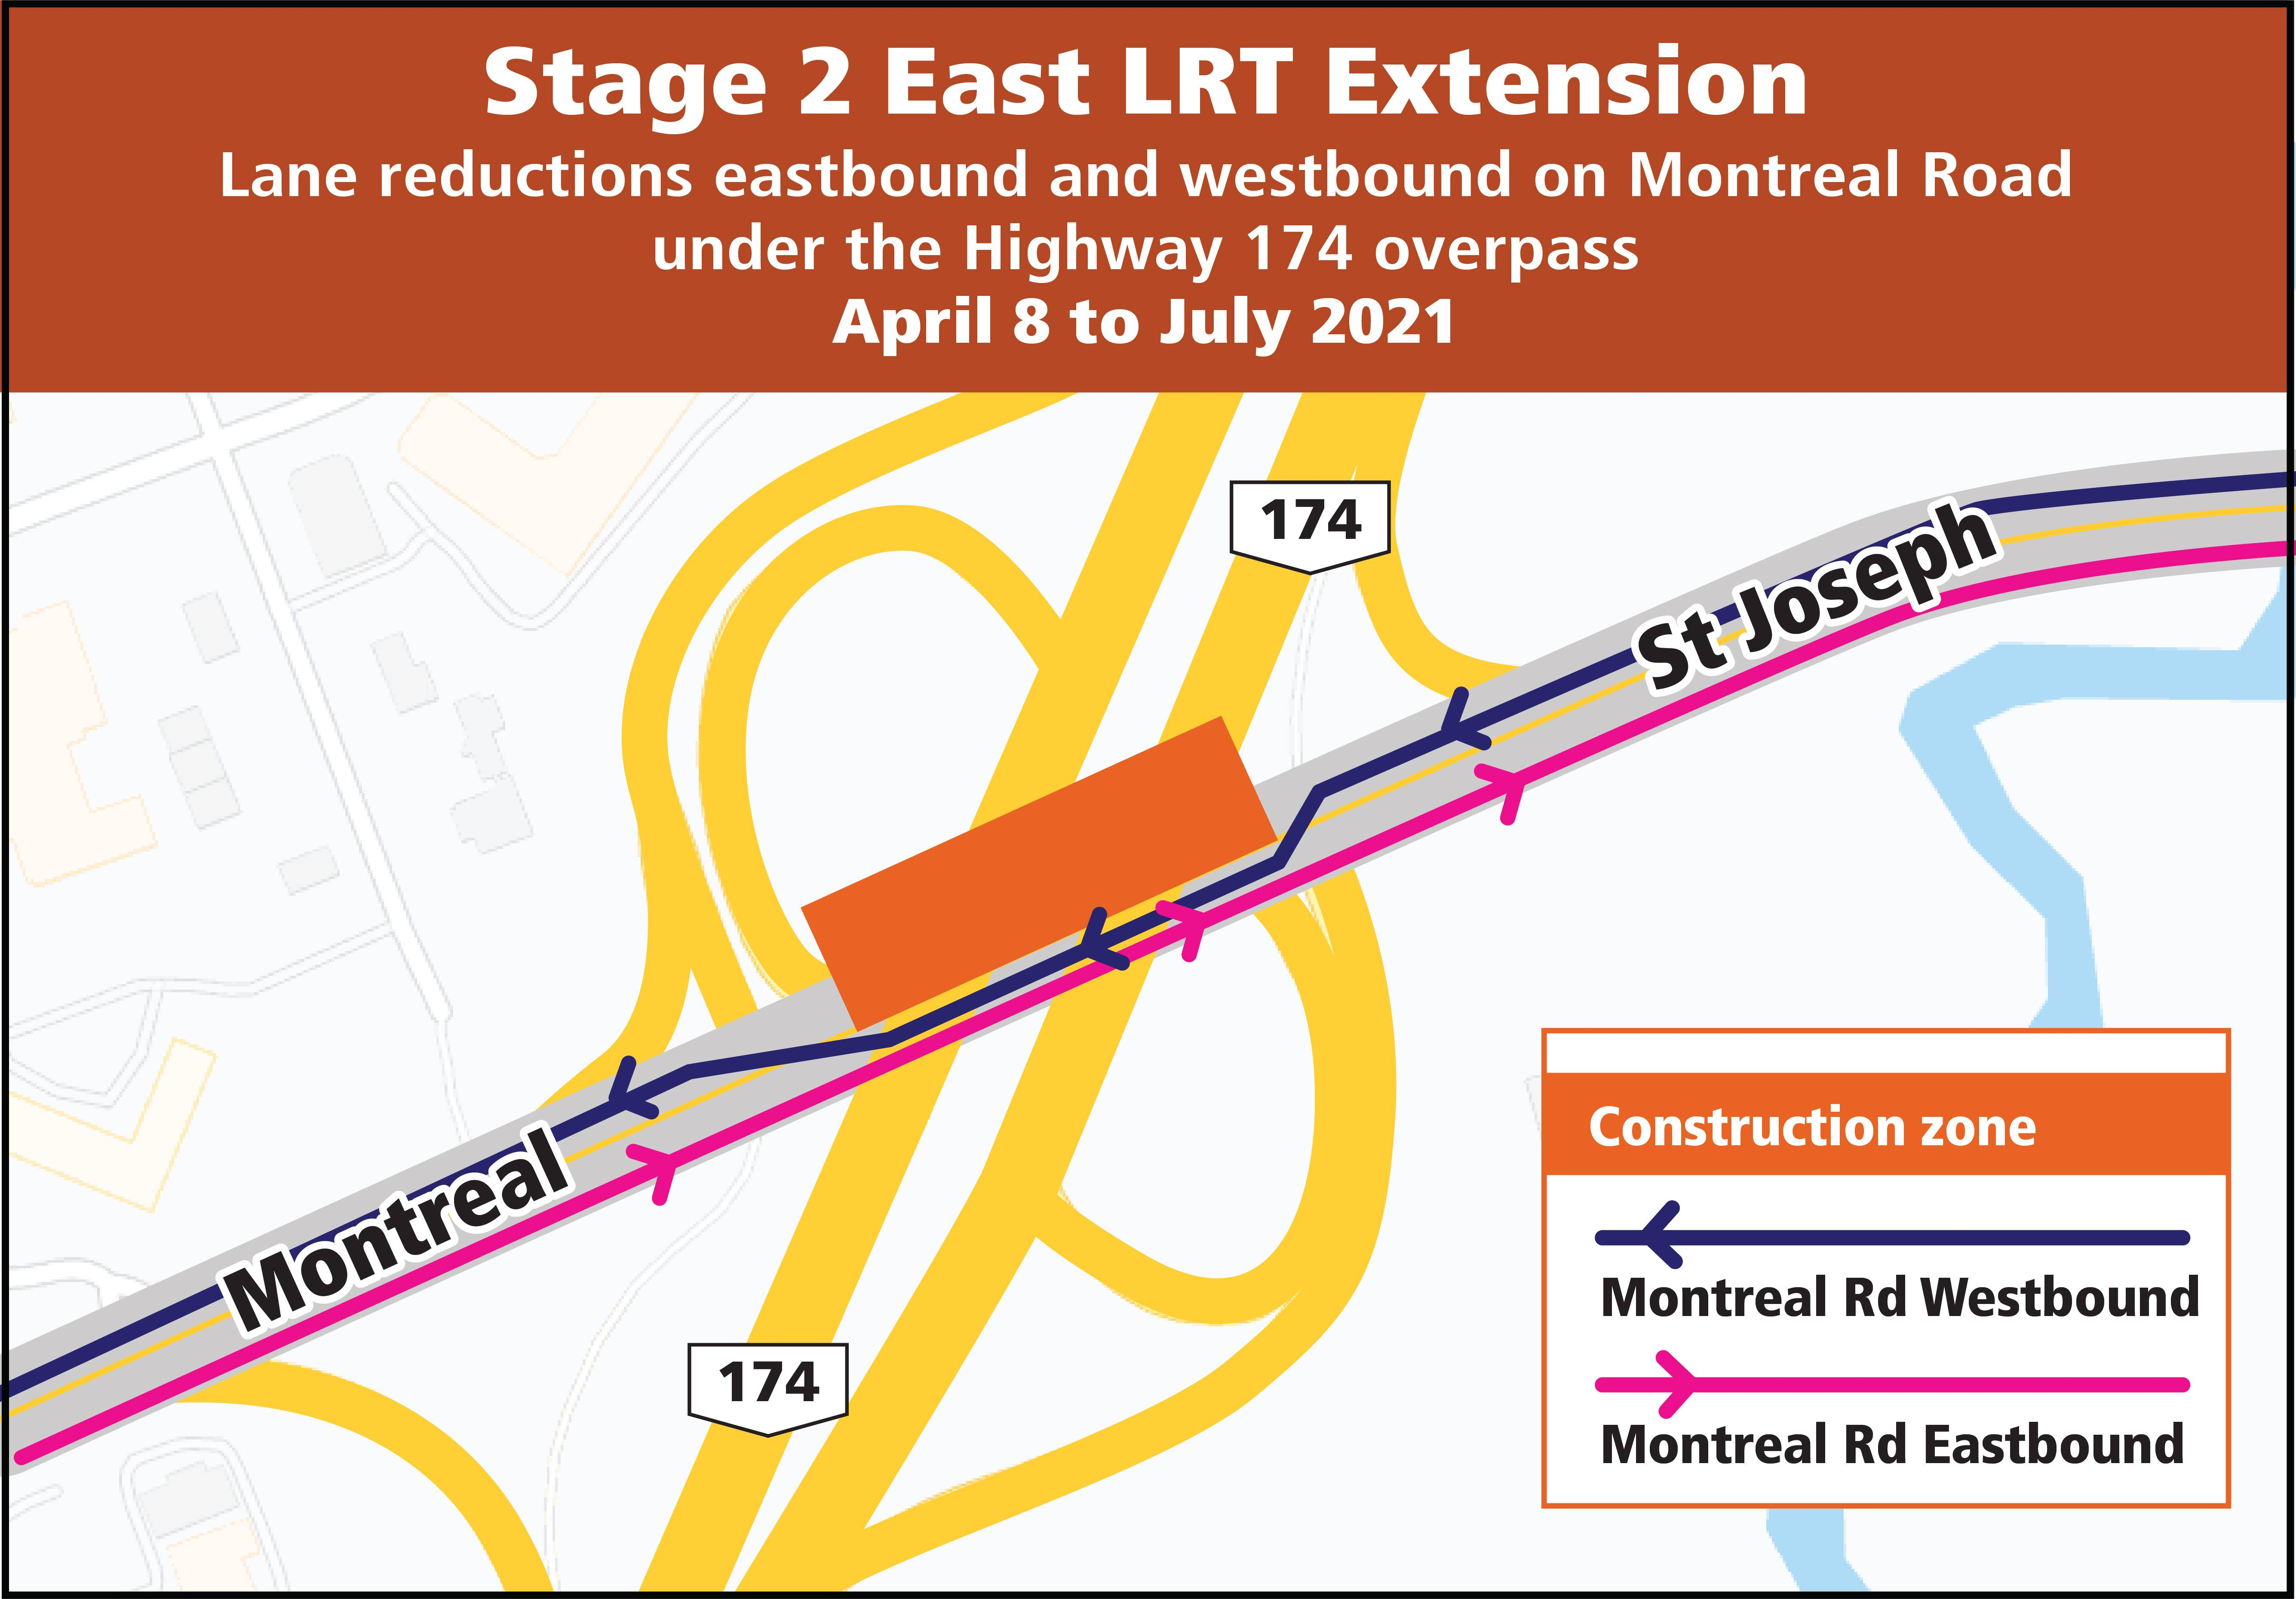 Lane reductions eastbound and westbound on Montreal Road under the Highway 174 overpass April 8 to July 2021